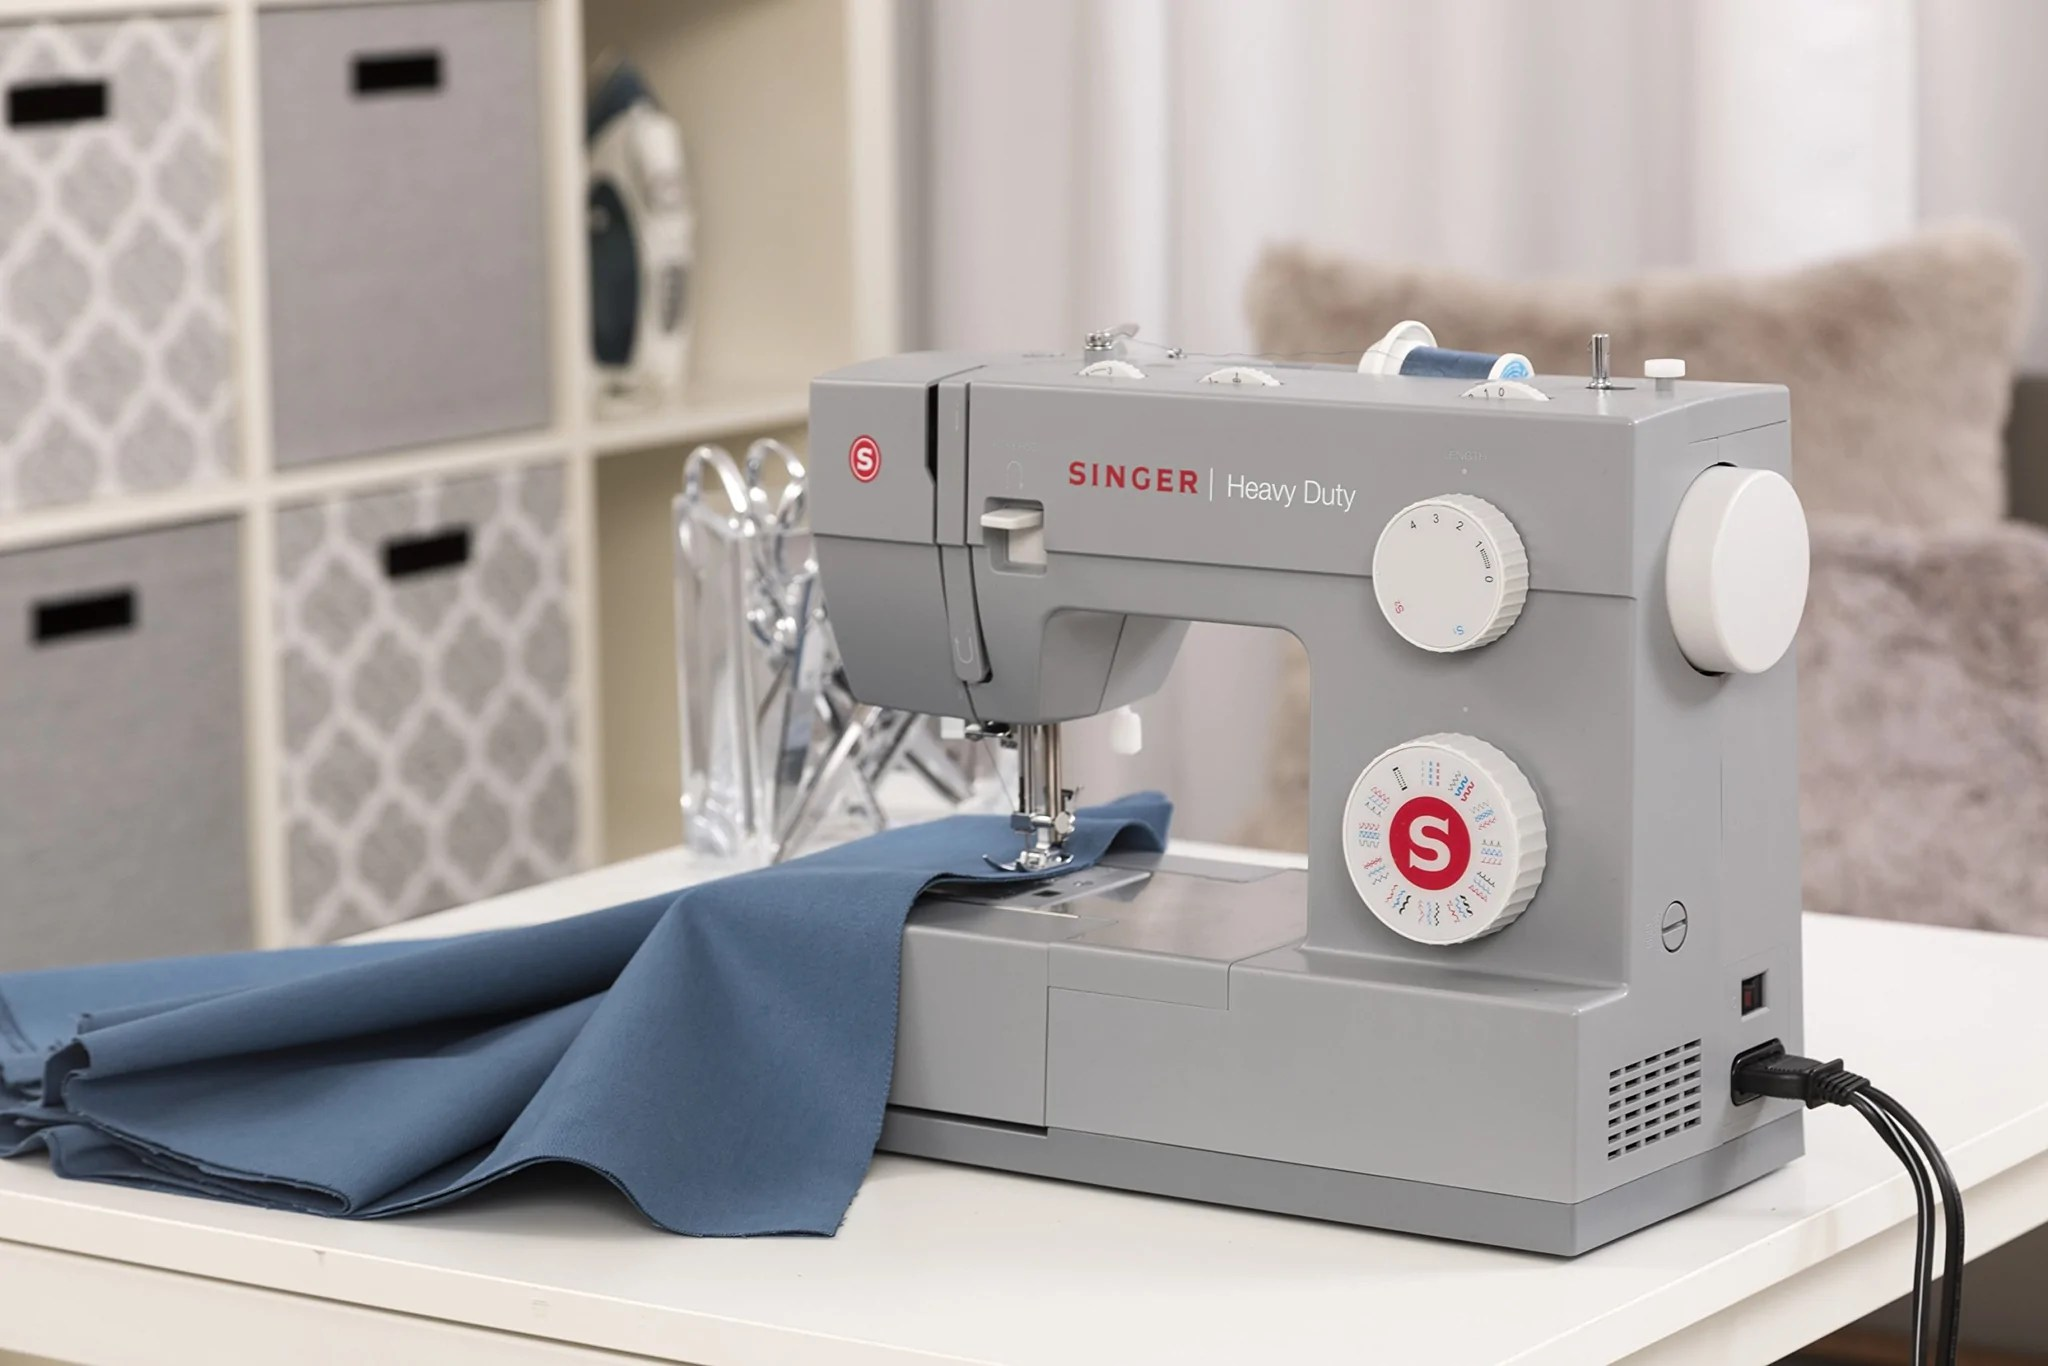 Singer Heavy Duty Sewing Machine 4432 With 32 Stitches Direct Sewing Machines Supplies